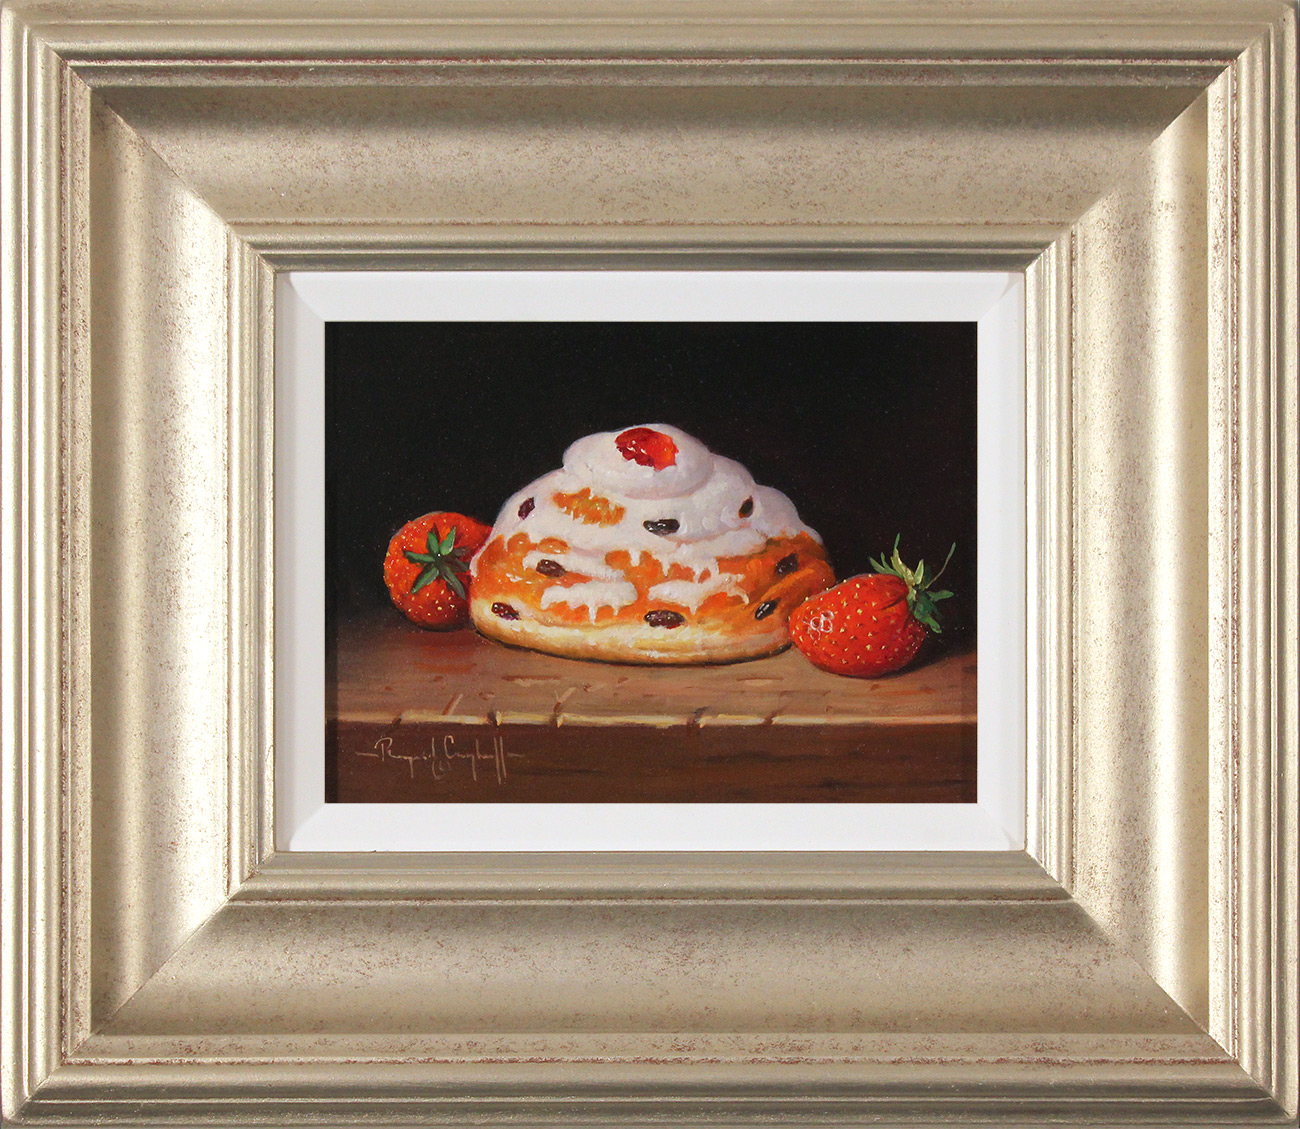 Raymond Campbell, Original oil painting on panel, Belgian Bun with Strawberries, click to enlarge